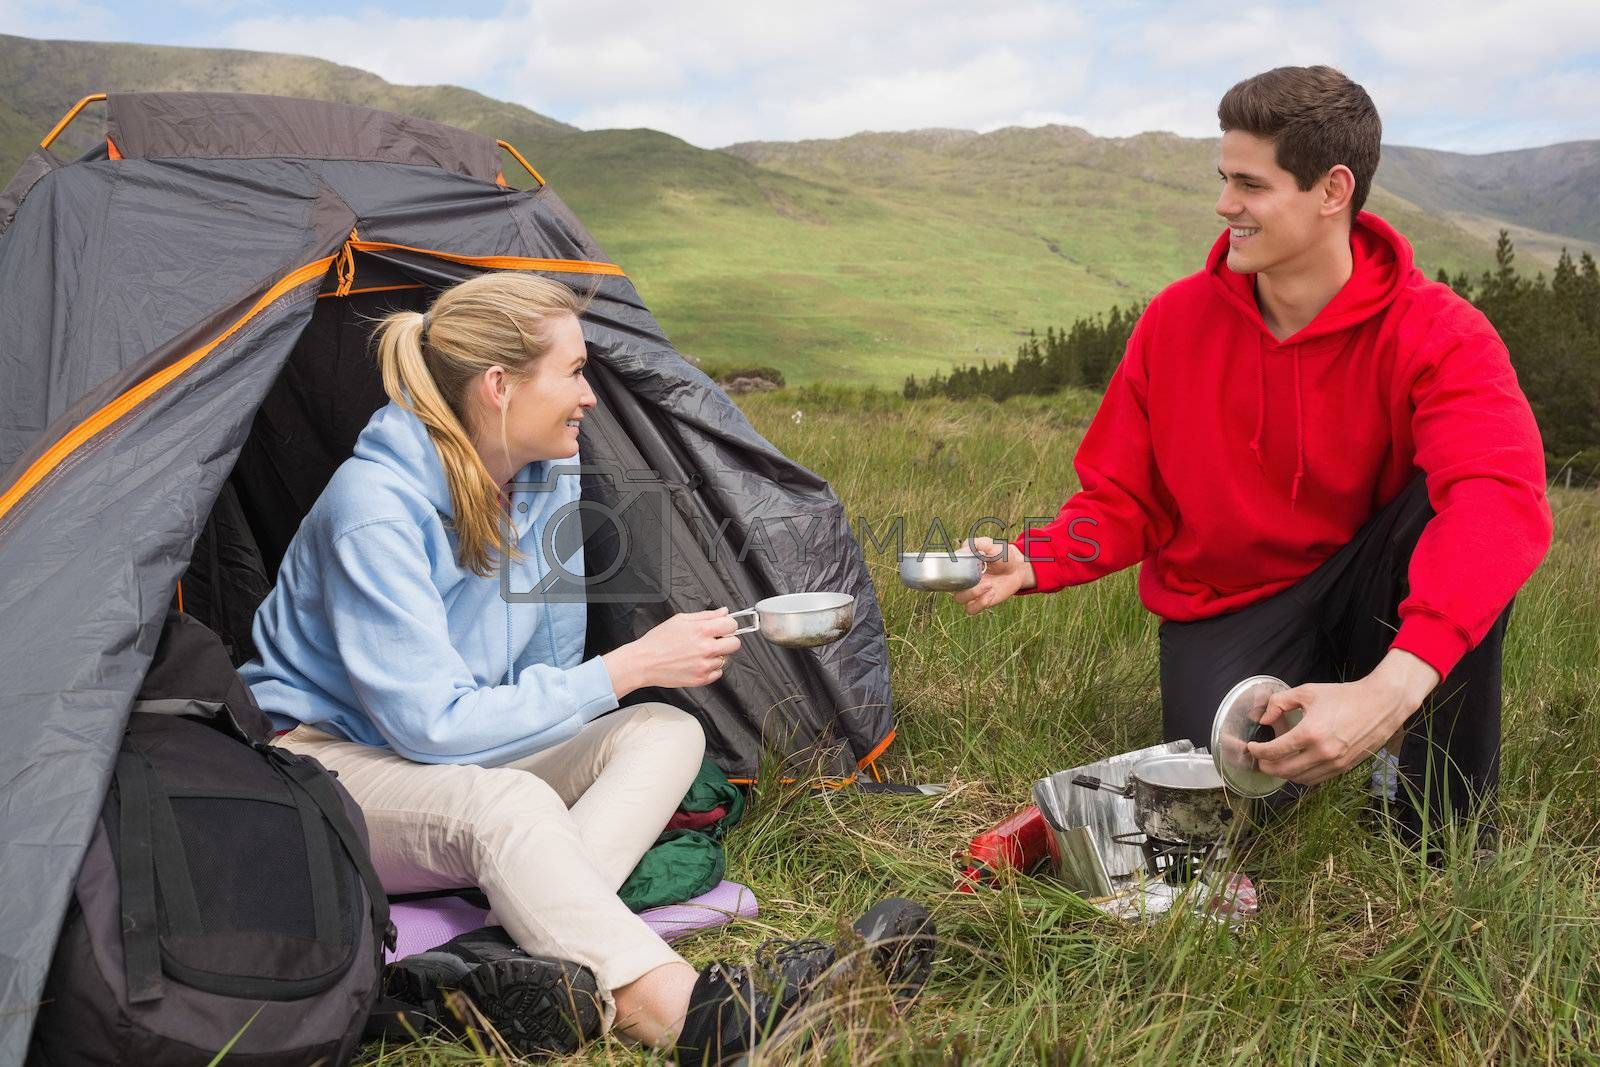 Happy couple cooking outdoors on camping trip by Wavebreakmedia